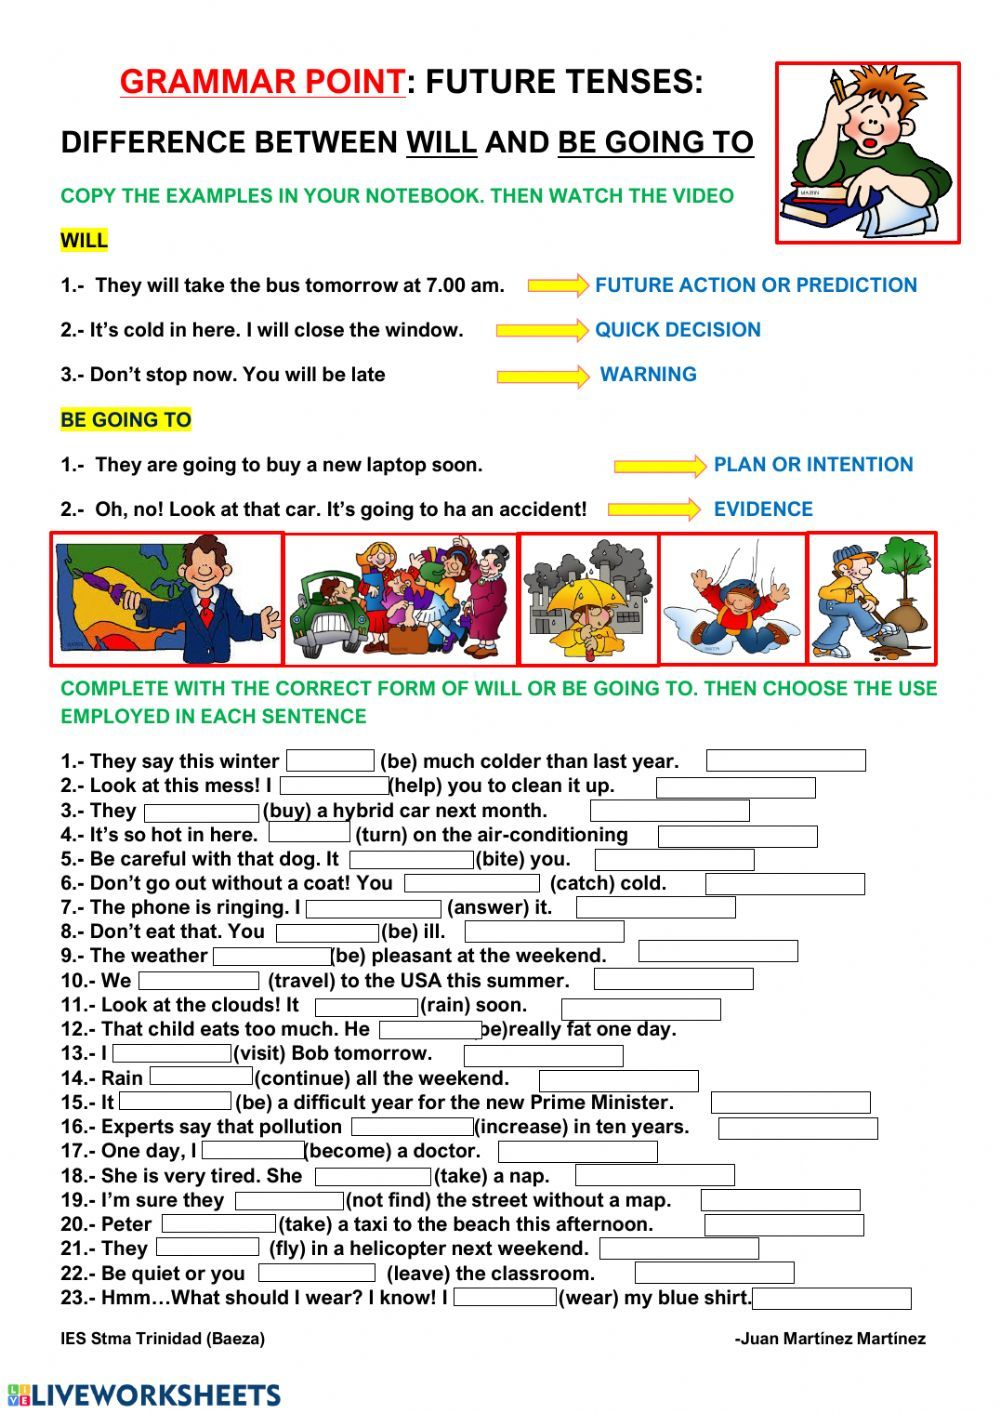 Will And Be Going To Interactive Worksheet Worksheets For Kids Teaching English Grammar English As A Second Language Esl